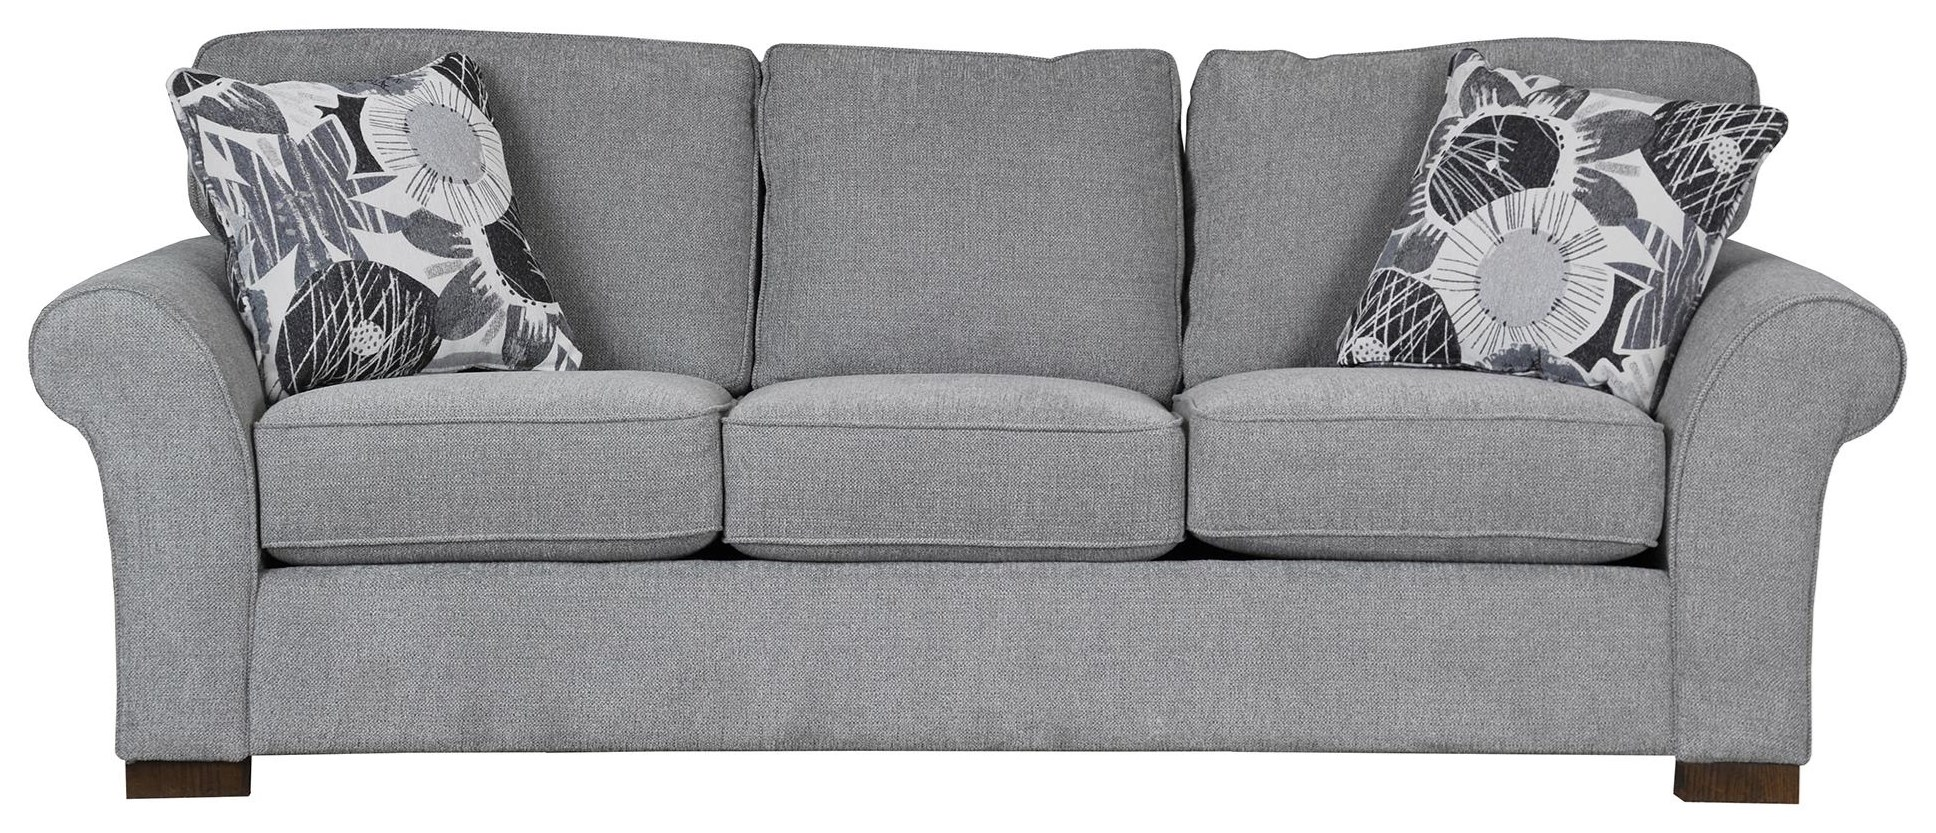 29662 Sofa by Sunset Home at Sadler's Home Furnishings